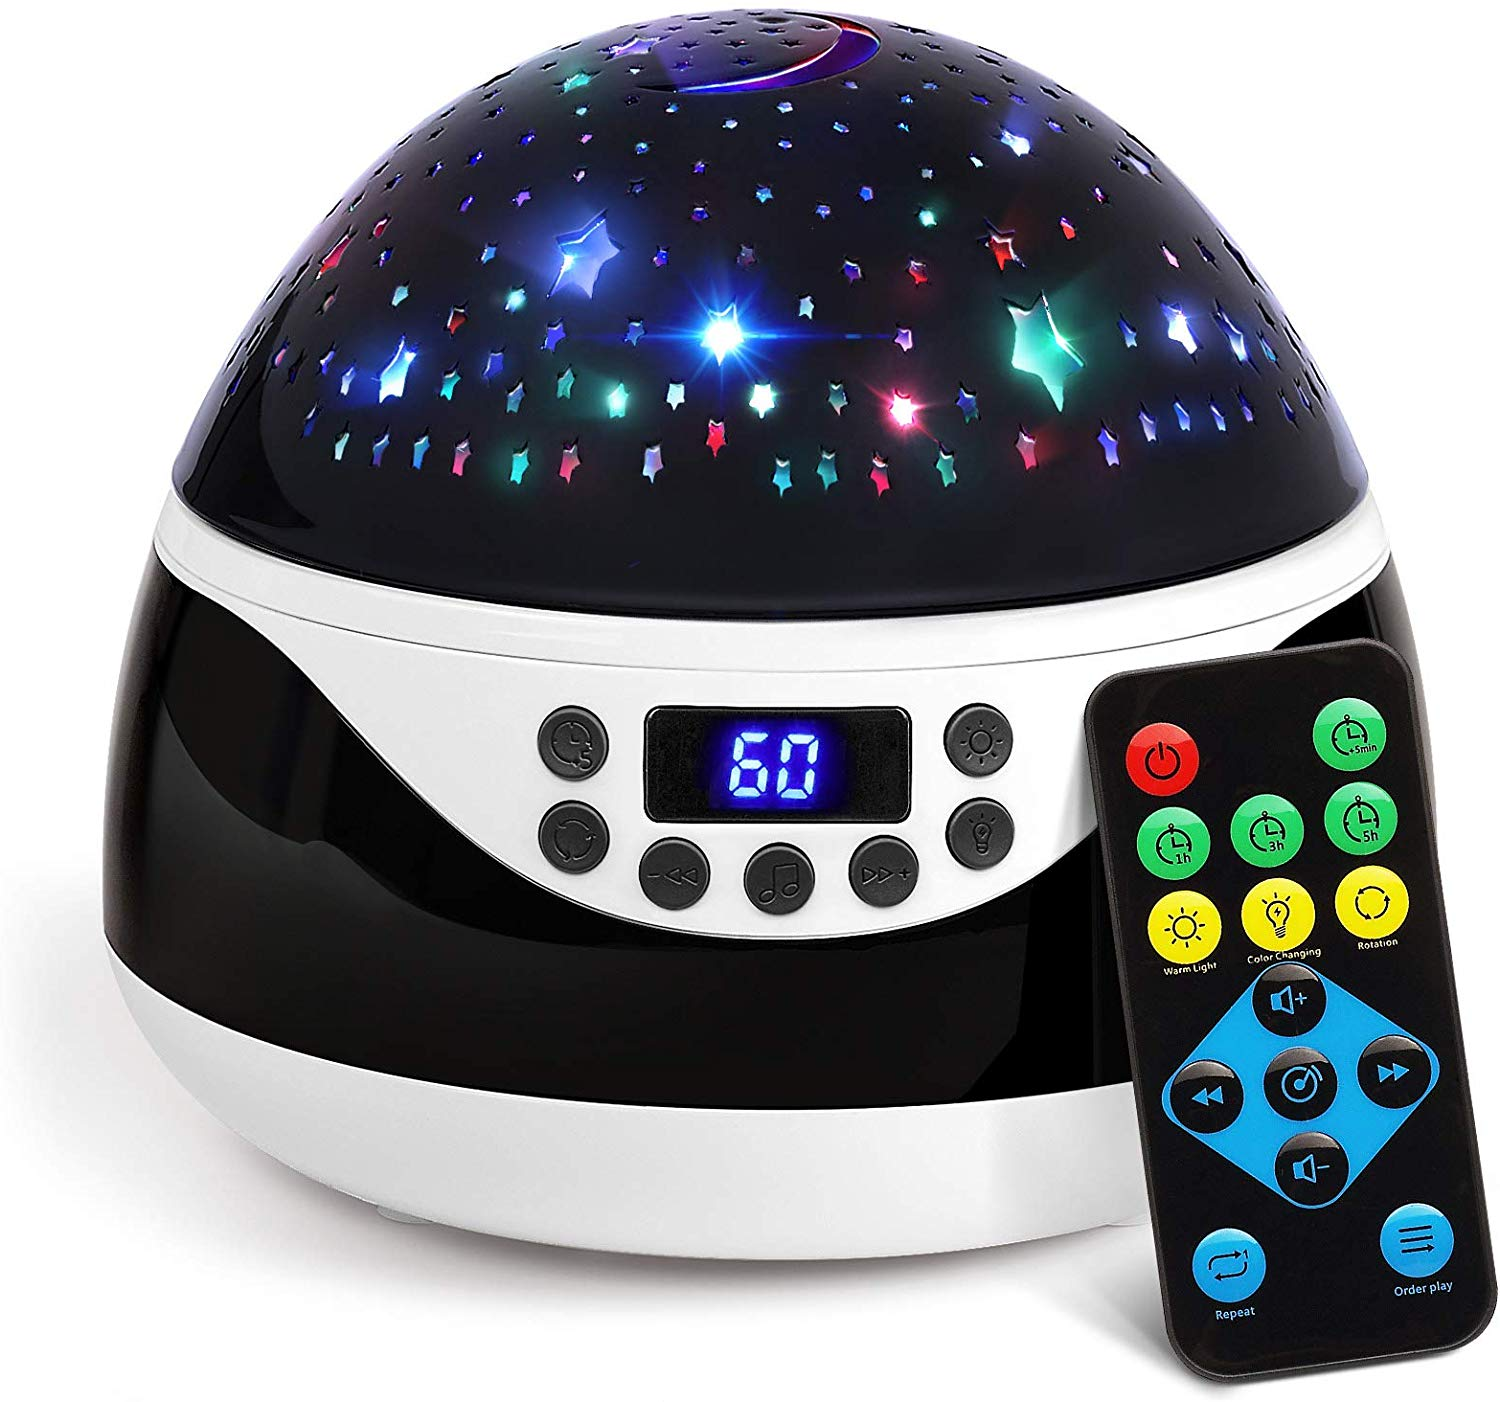 AnanBros Remote Baby Night Light with Timer Music, Star Night Light Projector for Kids, Rotating Kids Night Lights for Bedroom 9 Color Options, Projection Lamp for Baby Christmas Gifts Black,